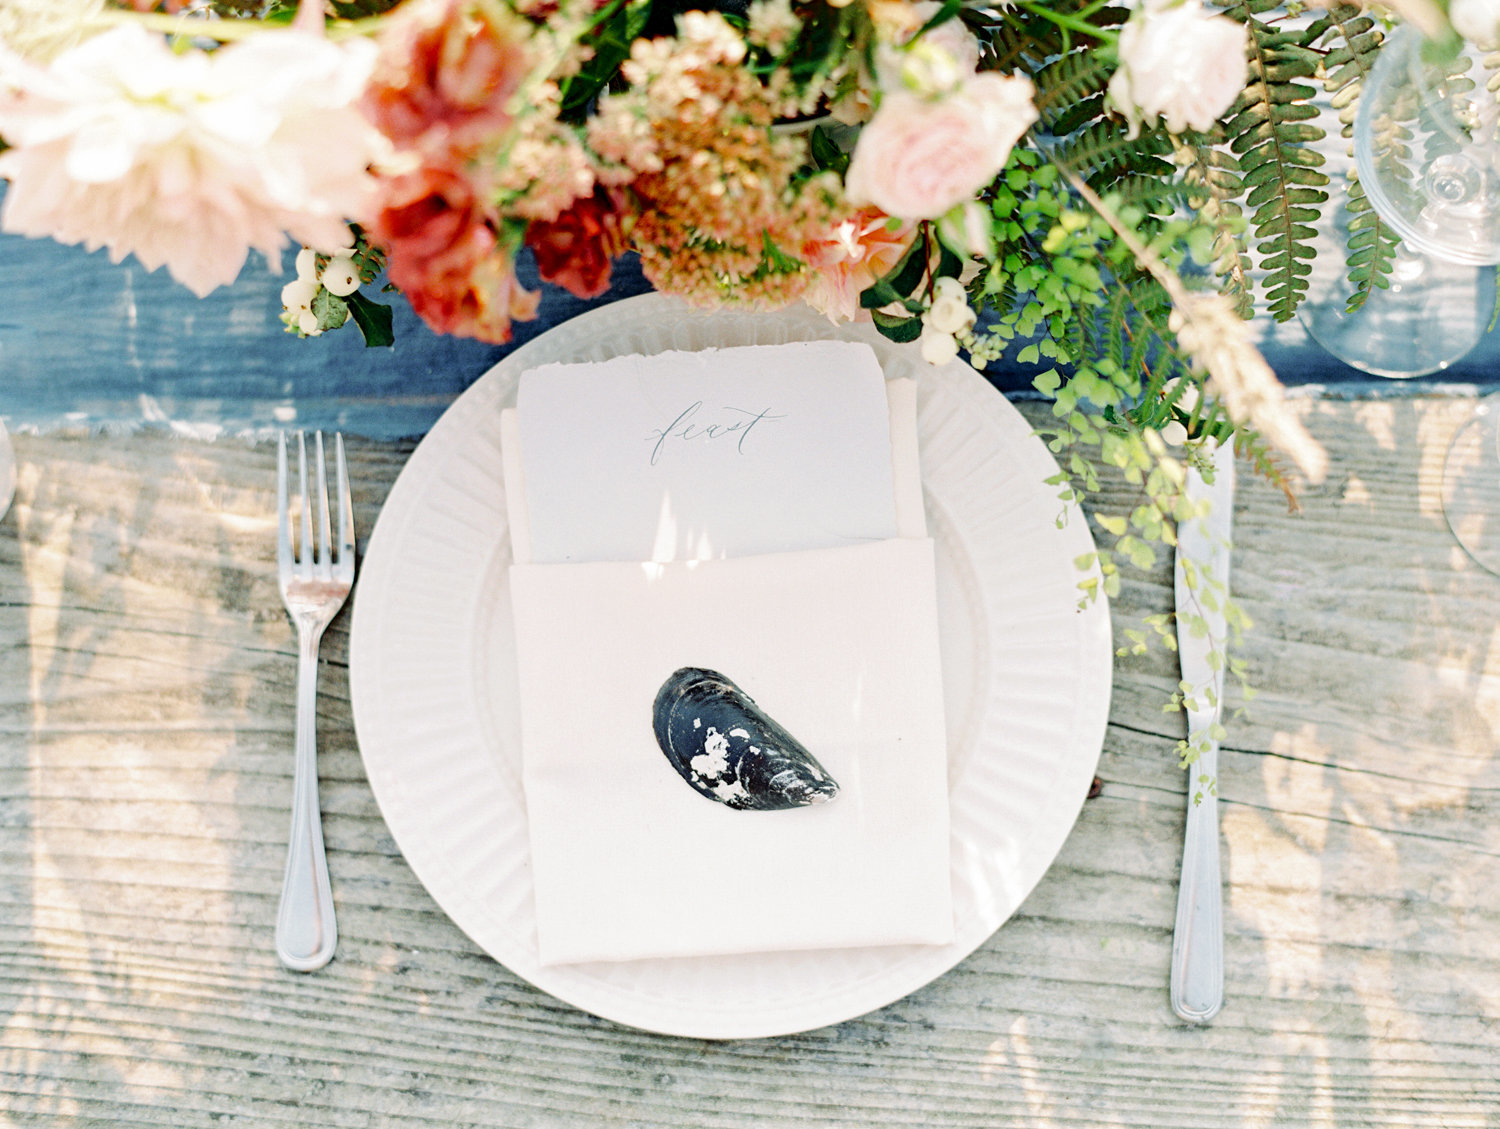 destination_california_mendocino_fine_art_wedding_photographer_bethany_erin-36